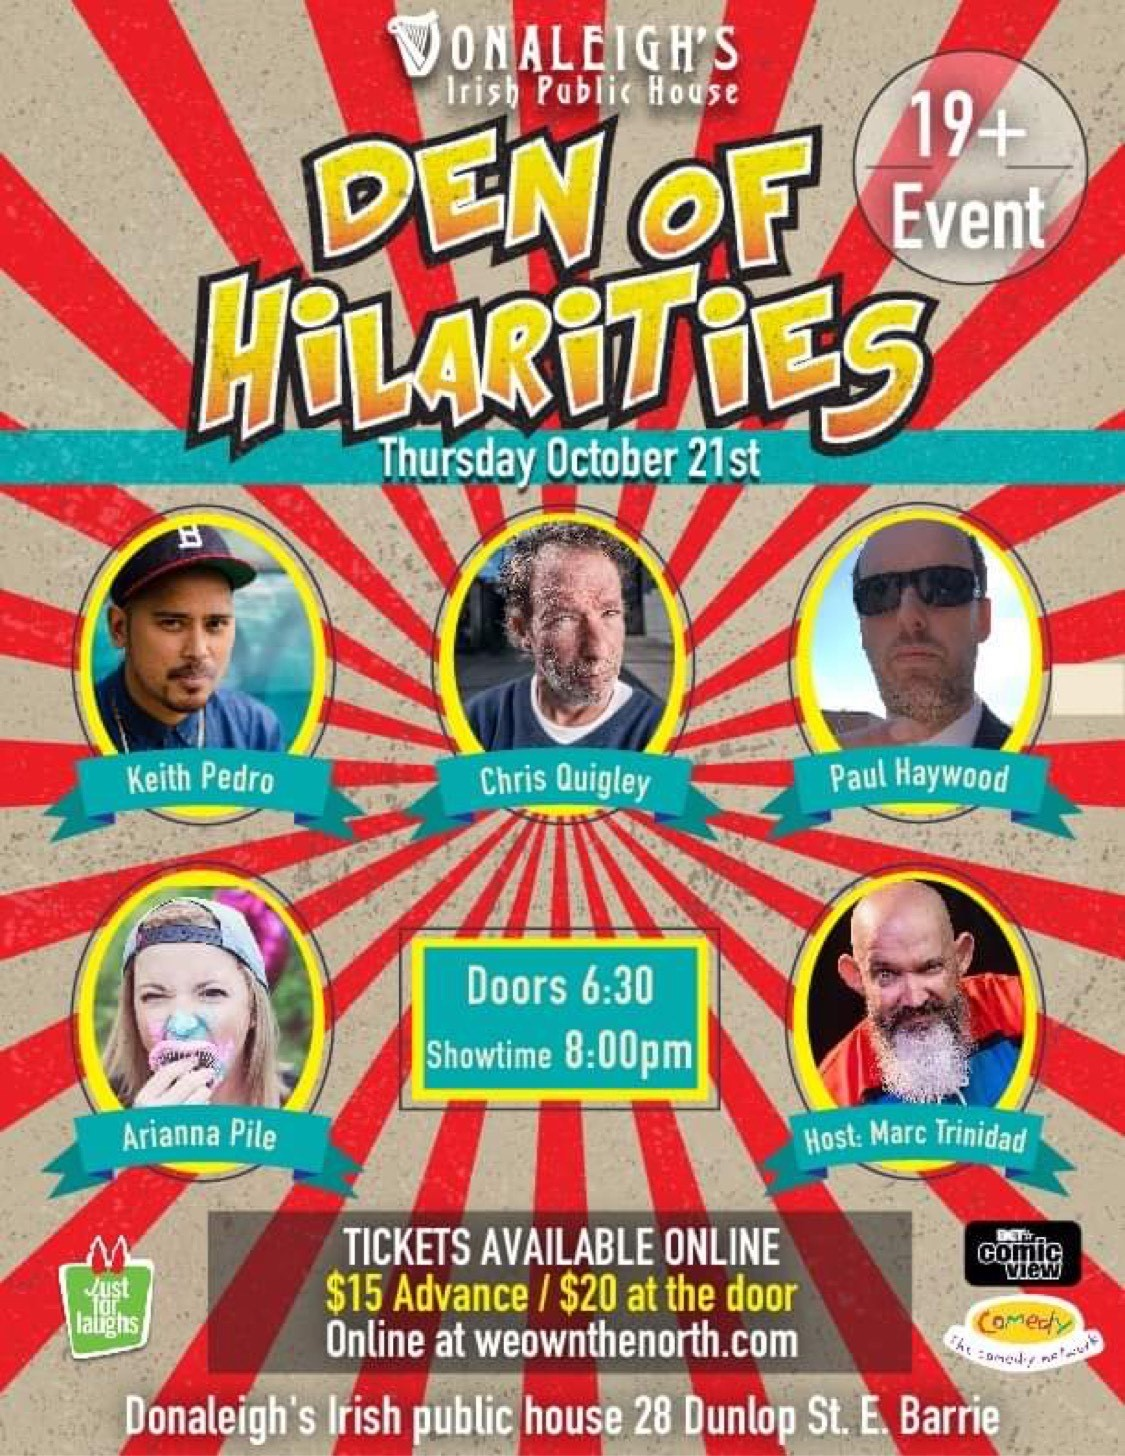 Donaleigh's Den of Hilarities Stand up Comedy Show on Oct 21, 20:00@Donaleigh's Irish Pub - Buy tickets and Get information on Marc Trinidad Ent